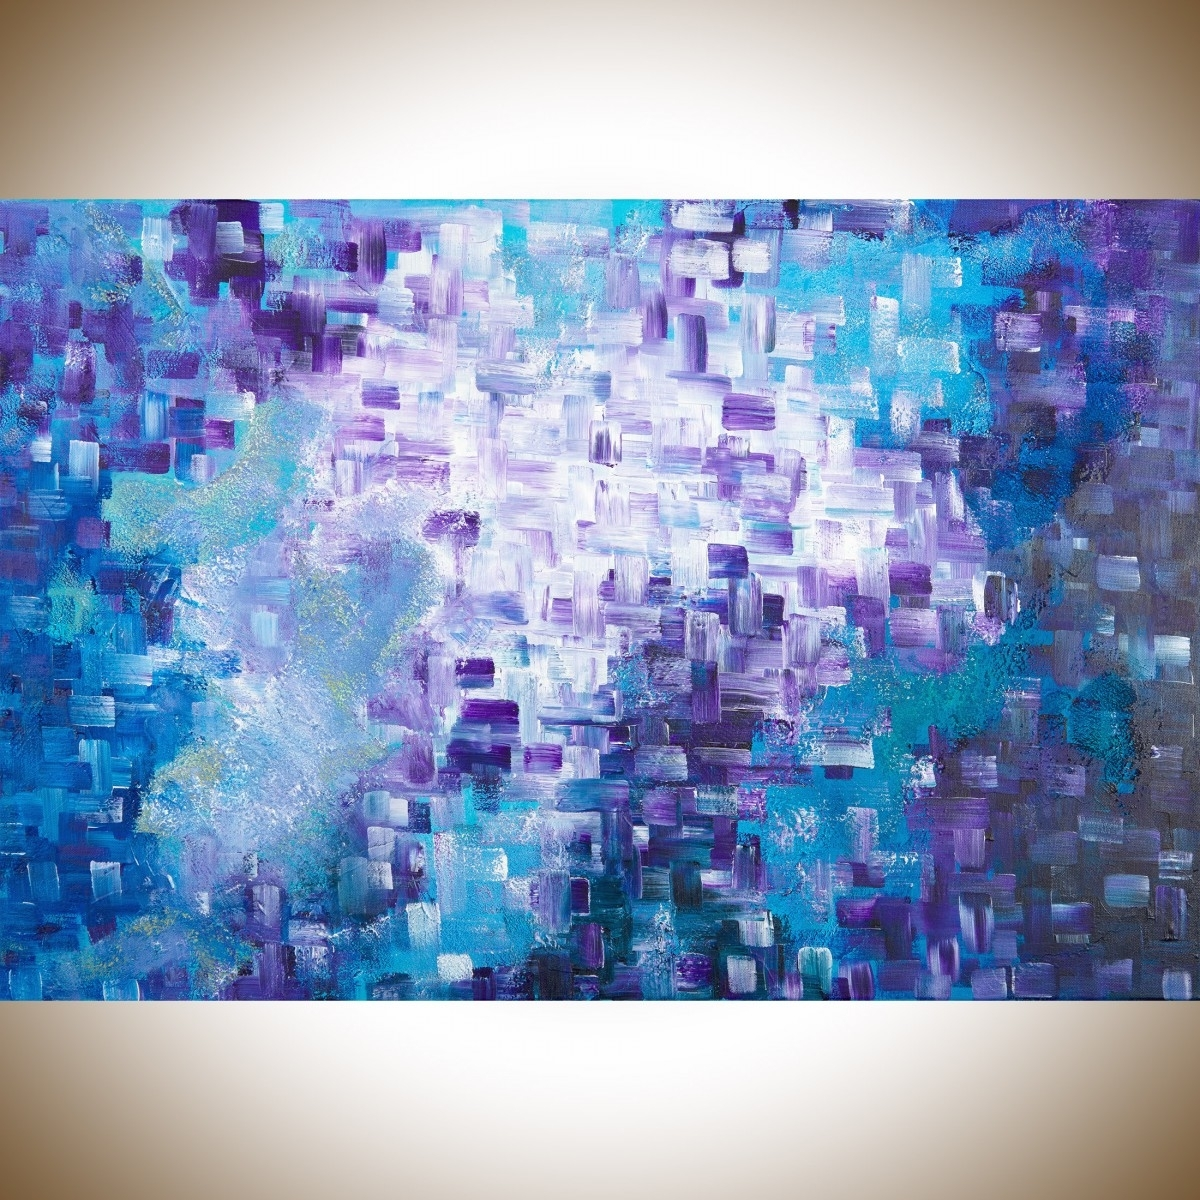 """Blue Abstract Wall Art Within Recent Dissolvingqiqigallery 36""""x24"""" Stretched Canvas Original Large (View 10 of 15)"""